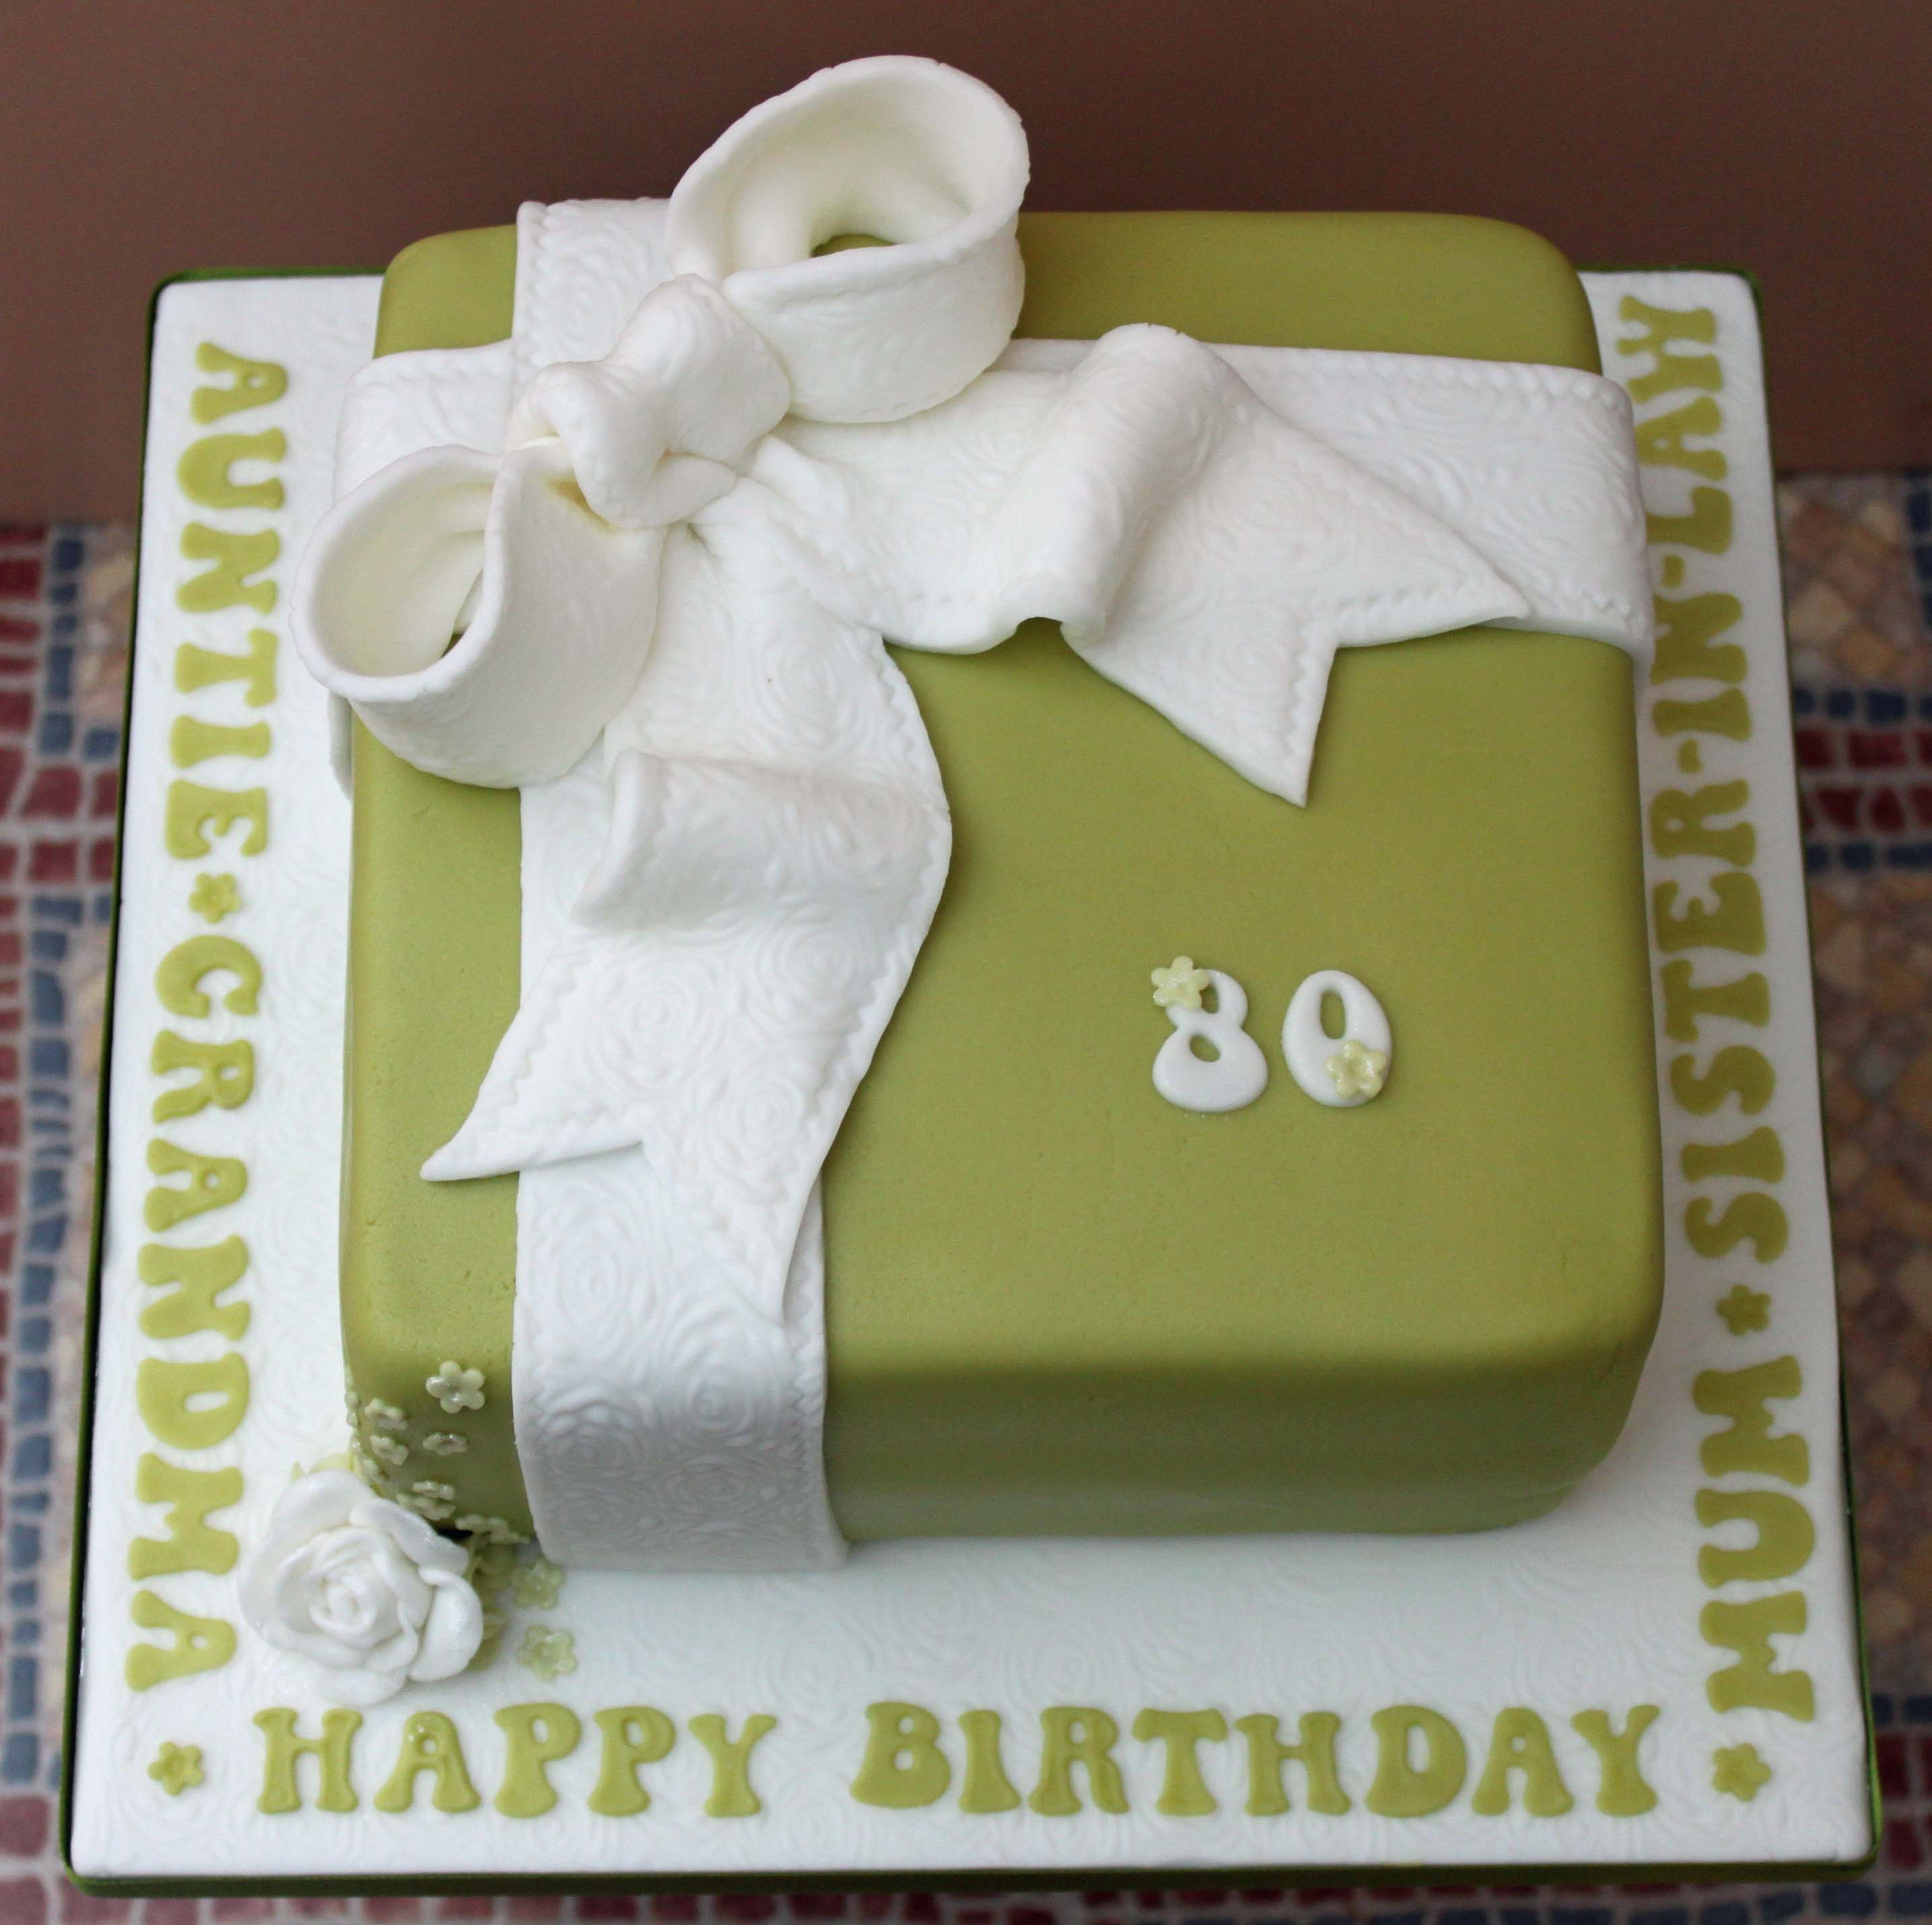 Green birthday present cake